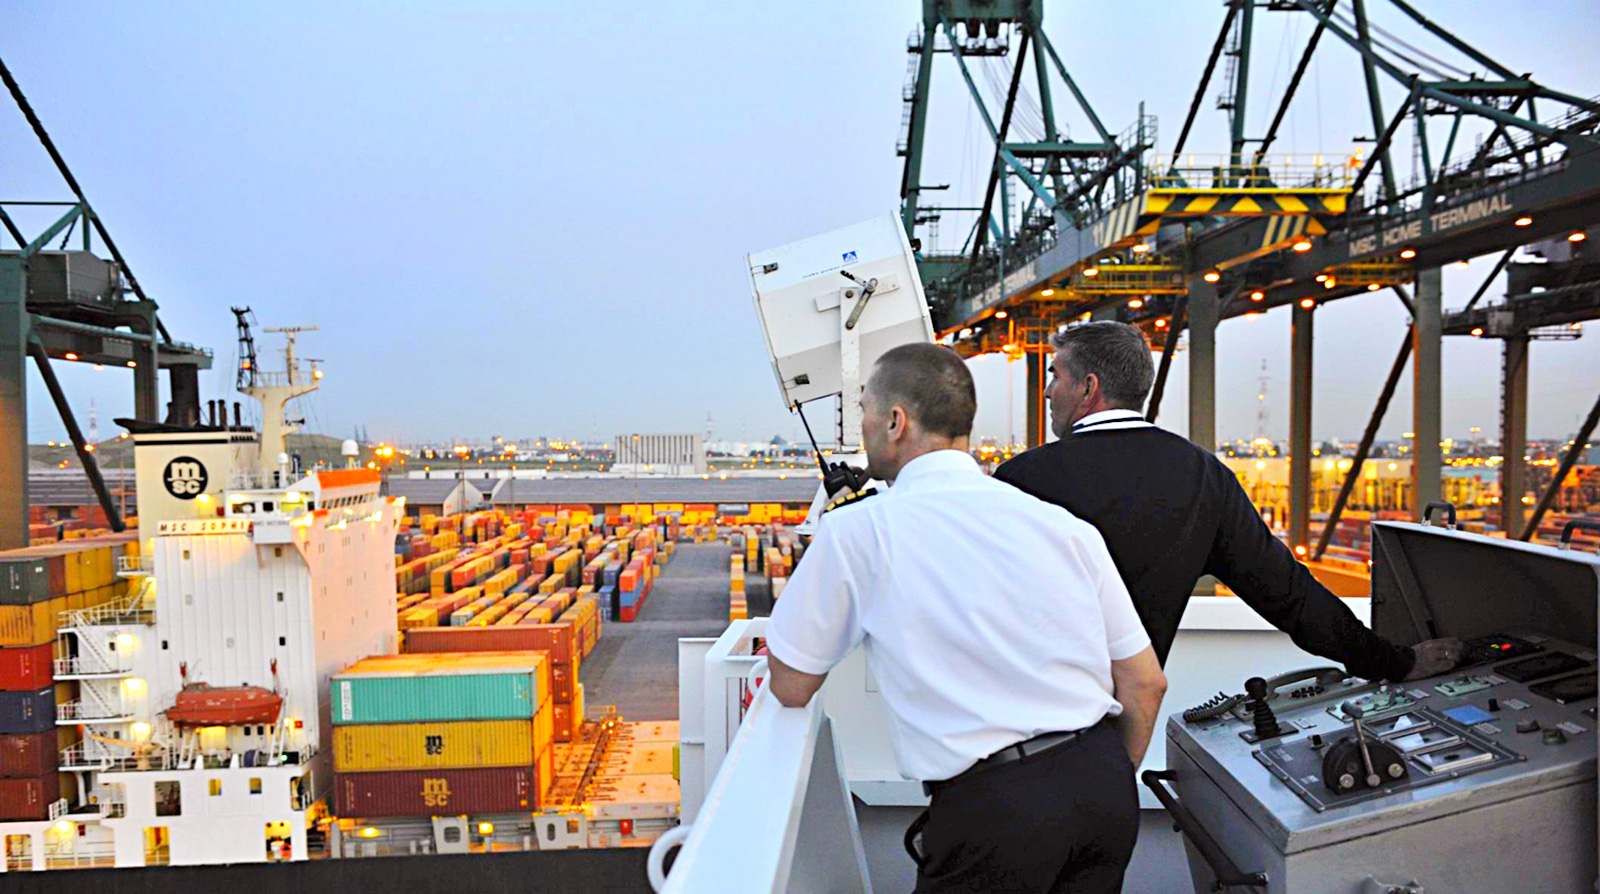 World premiere in port of Antwerp: digital platform for pilots and boatmen